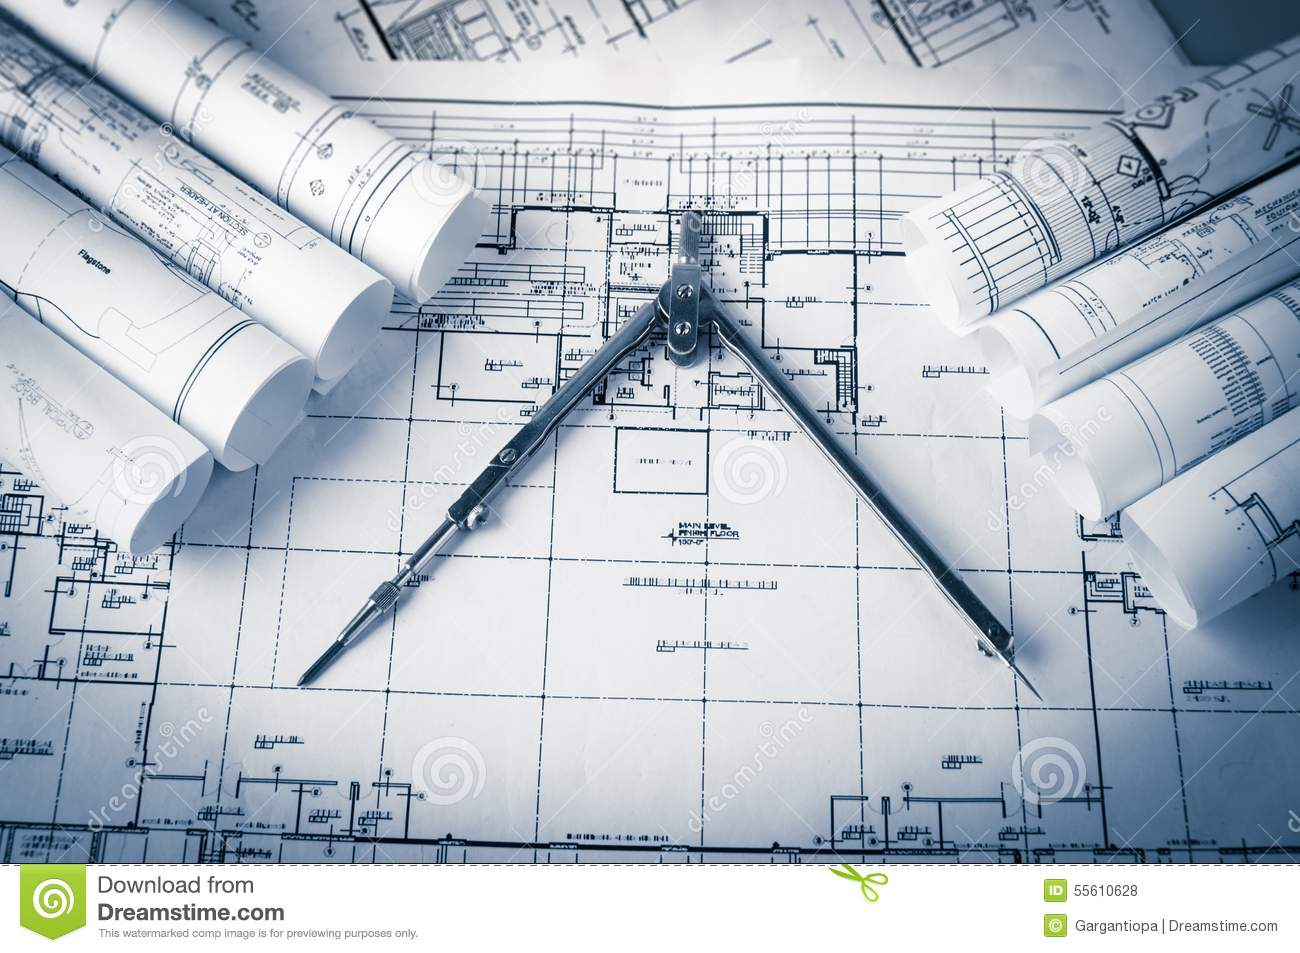 Rolls of architecture blueprints and house plans stock for House blueprint images